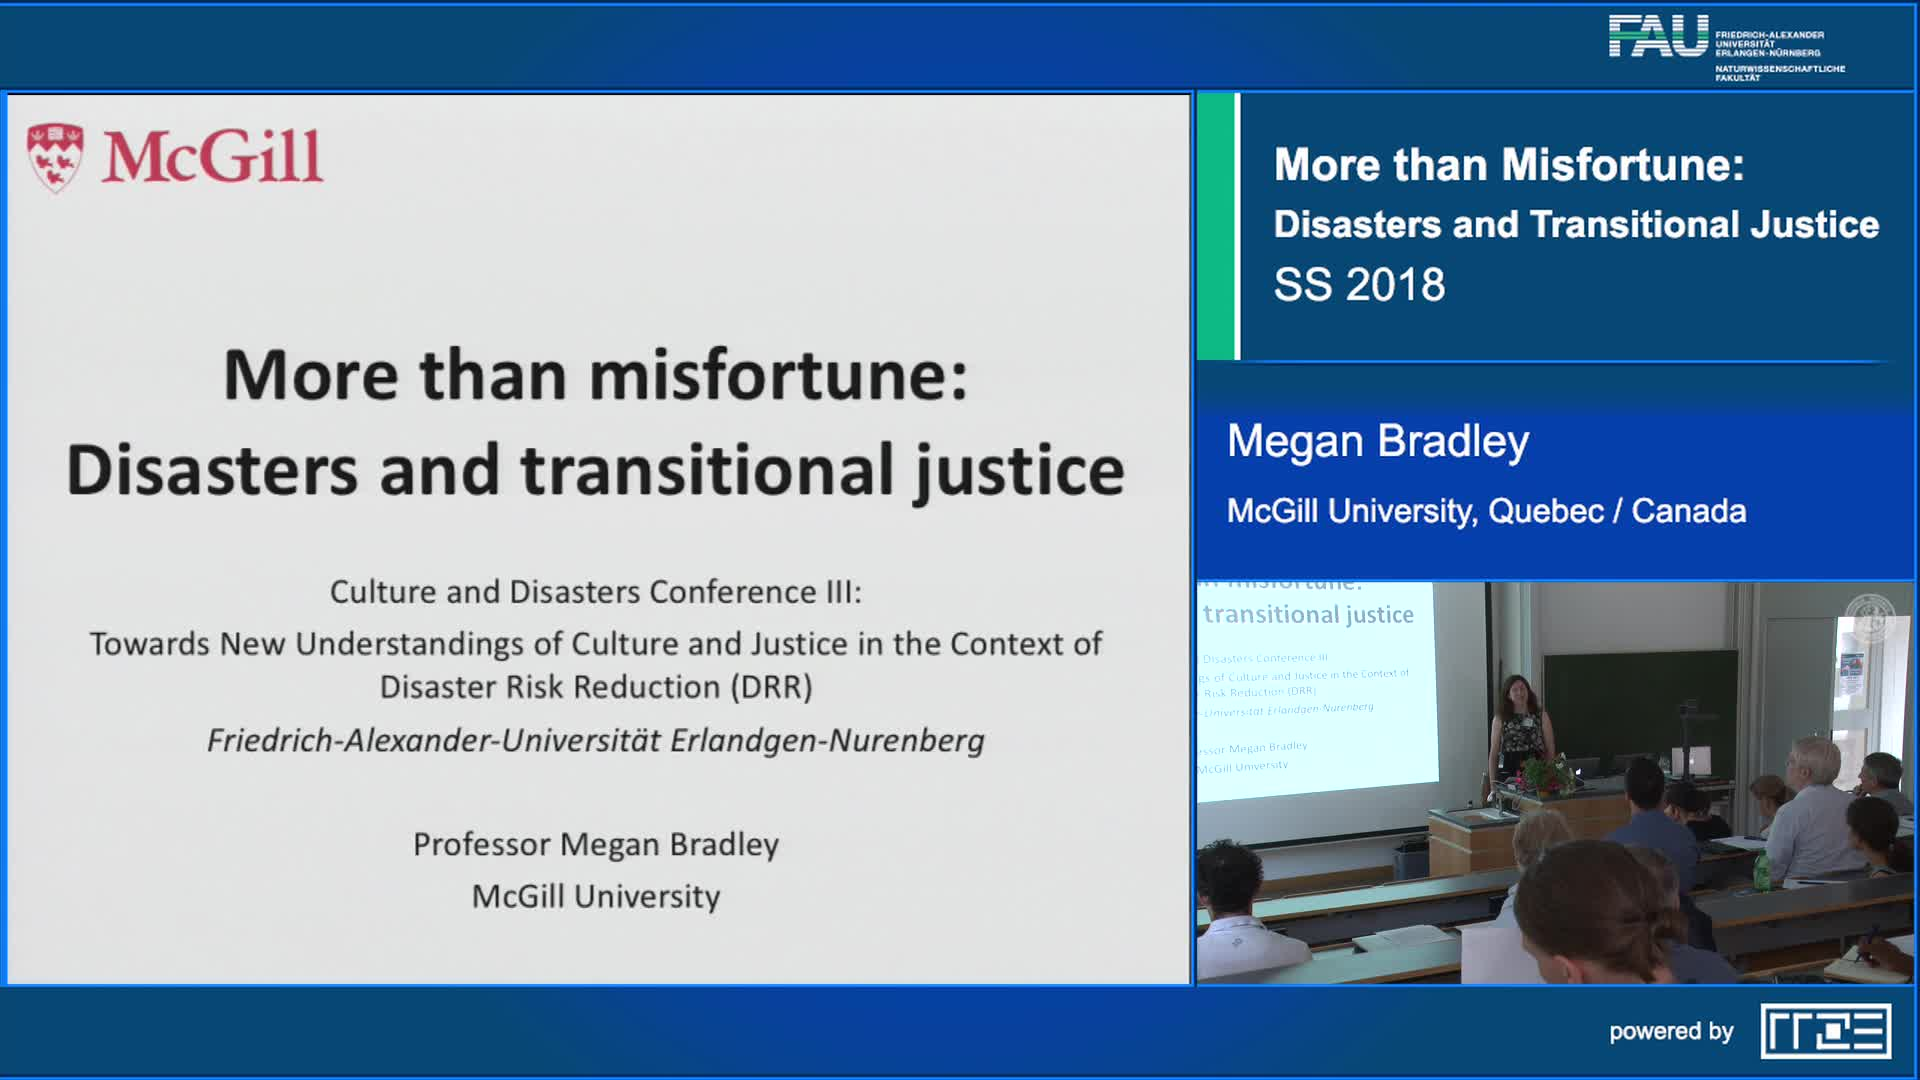 More than Misfortune: Disasters and Transitional Justice preview image